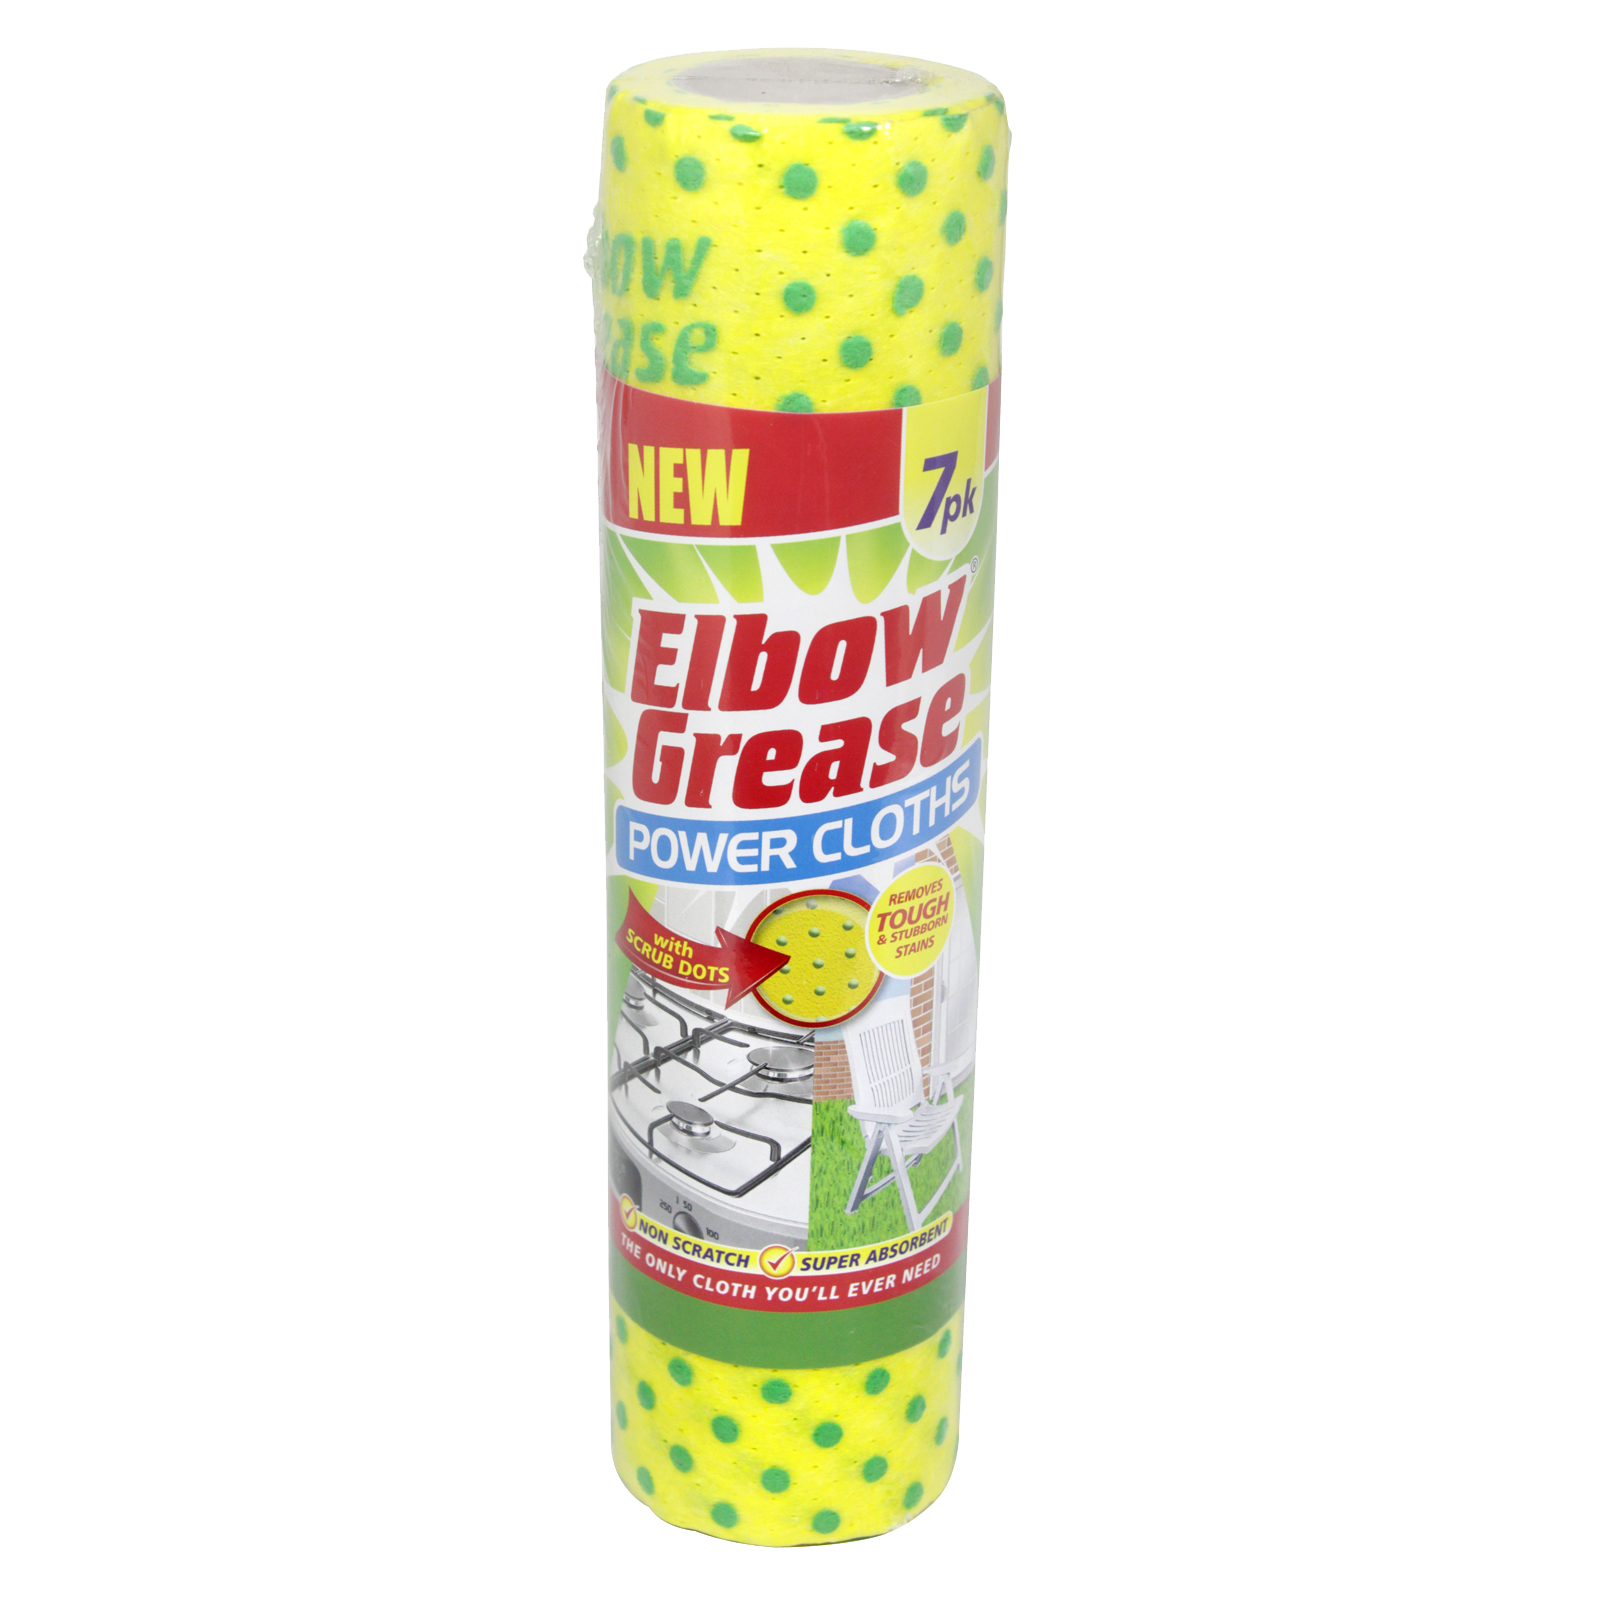 151 ELBOW GREASE 7 POWER CLOTHS STD SIZE